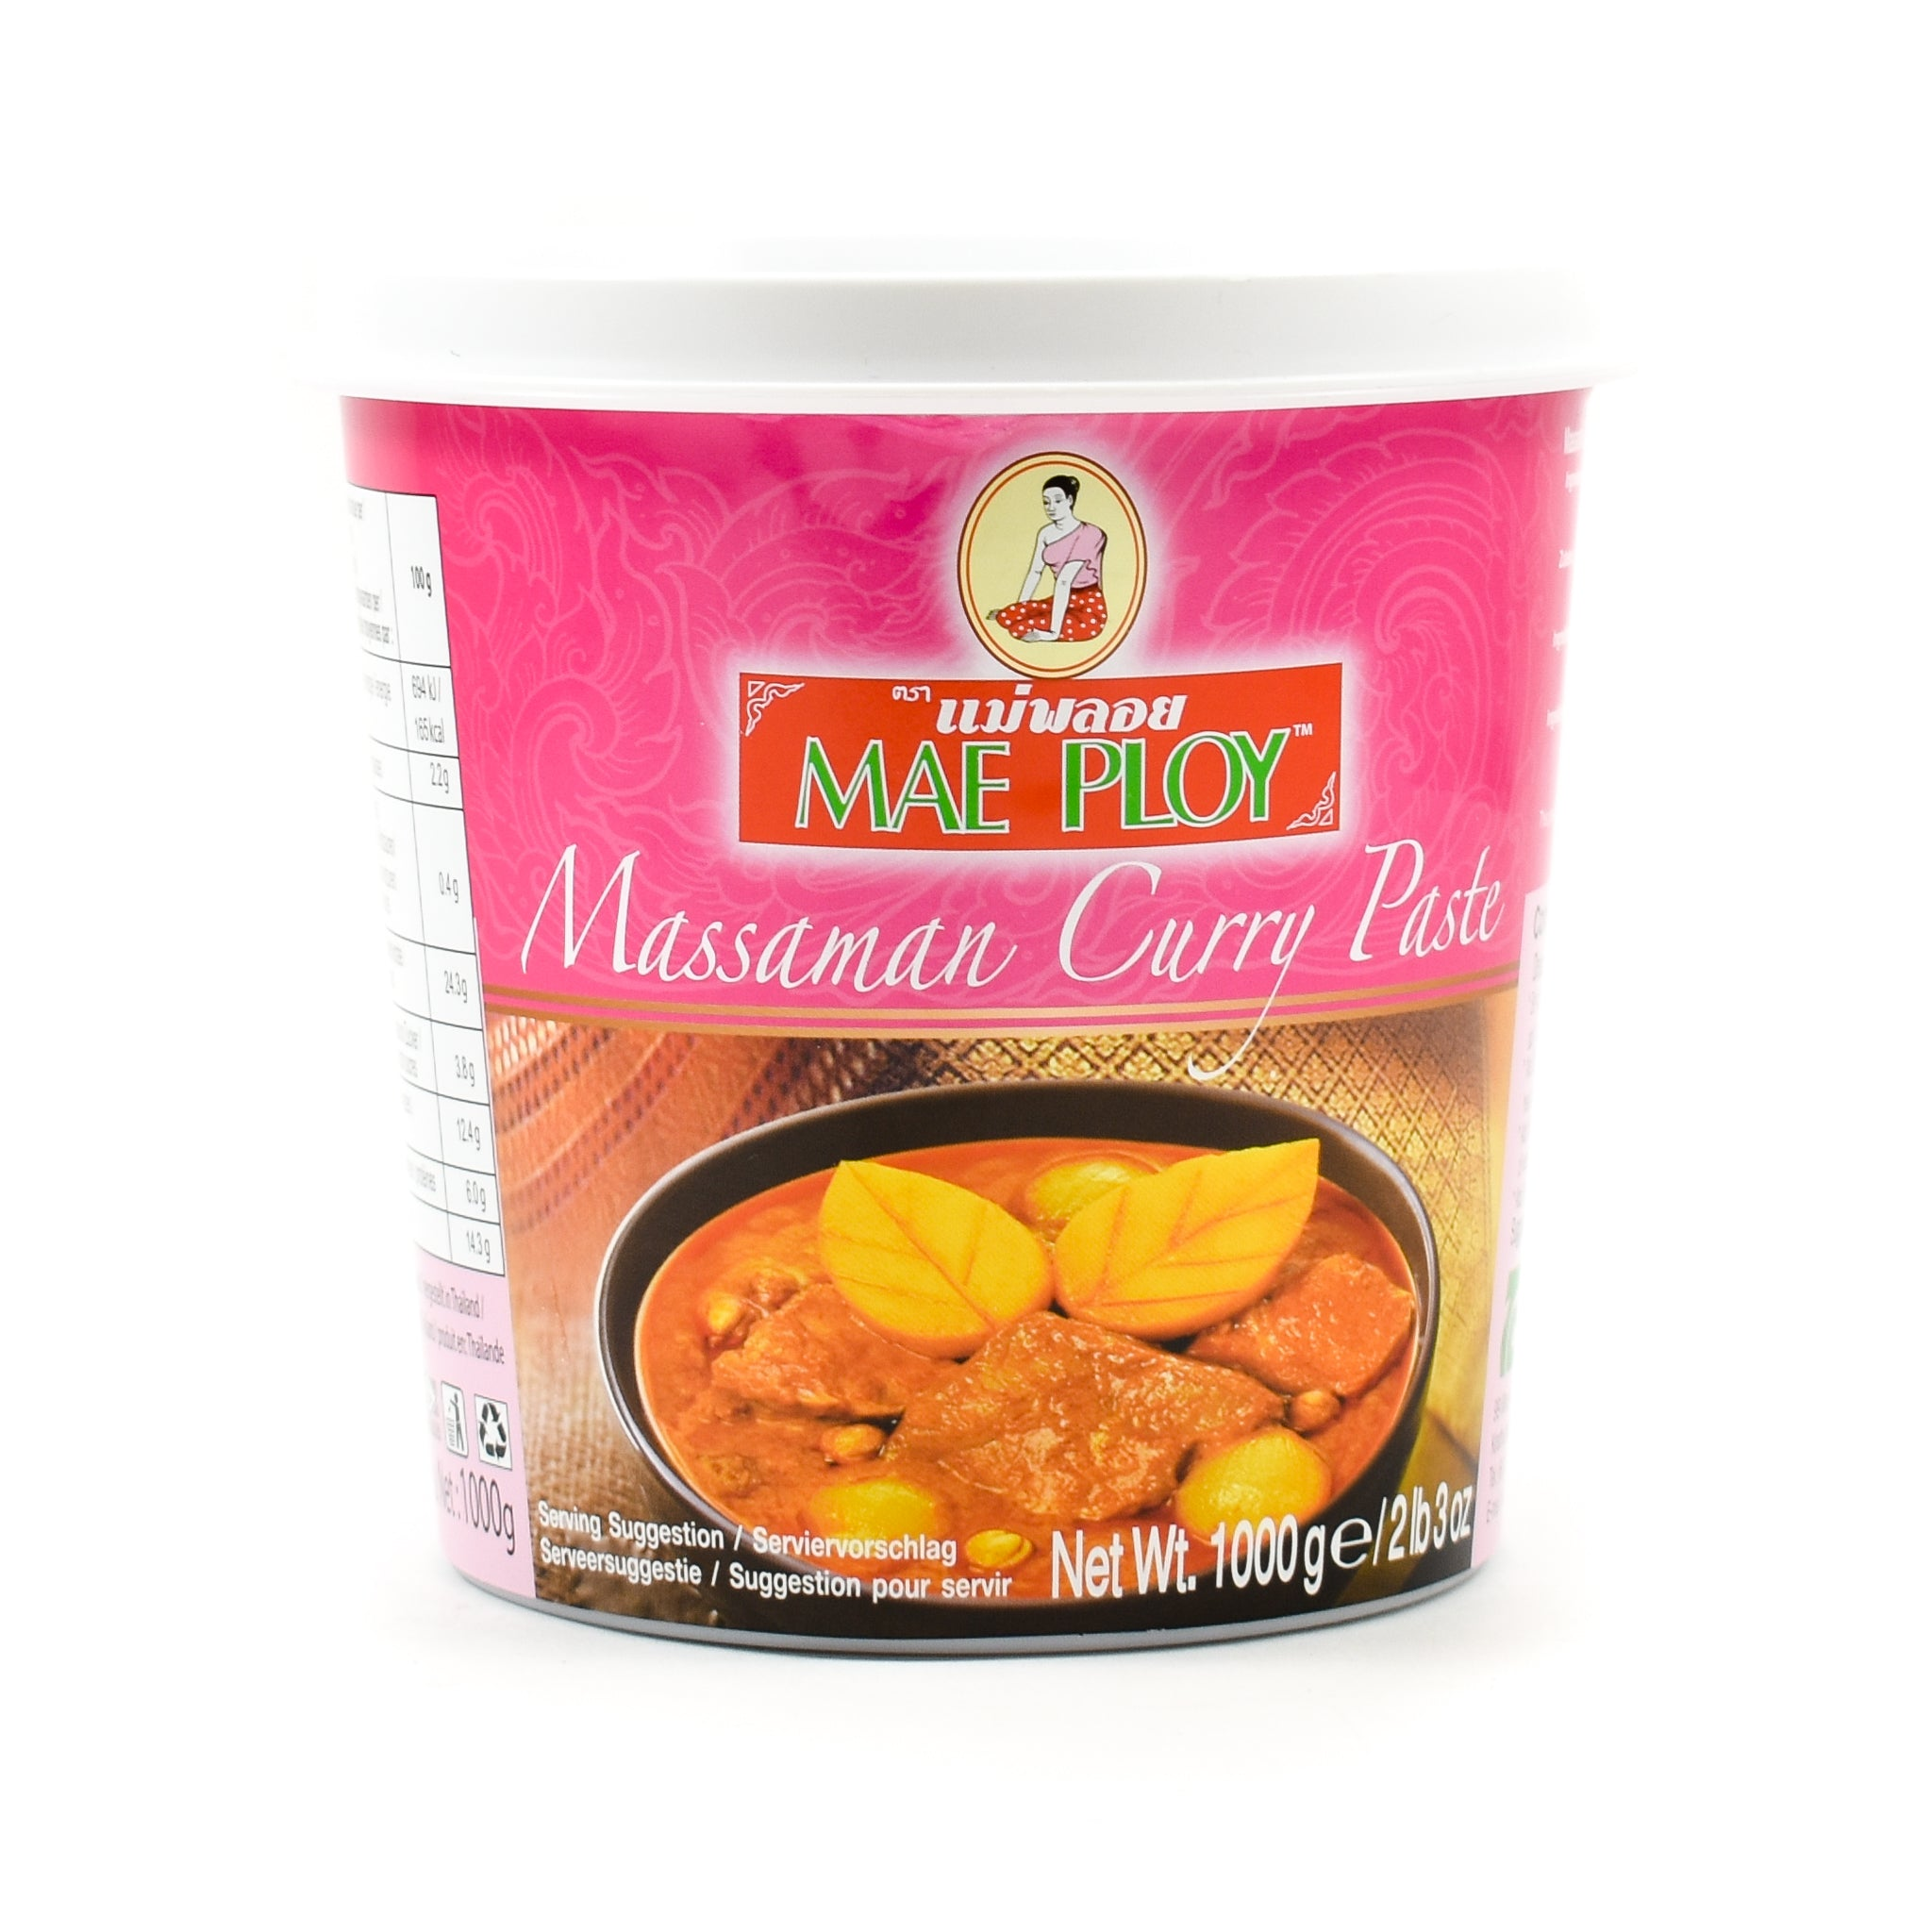 Mae Ploy Masaman Curry Paste 1kg Ingredients Sauces & Condiments Asian Sauces & Condiments Southeast Asian Food